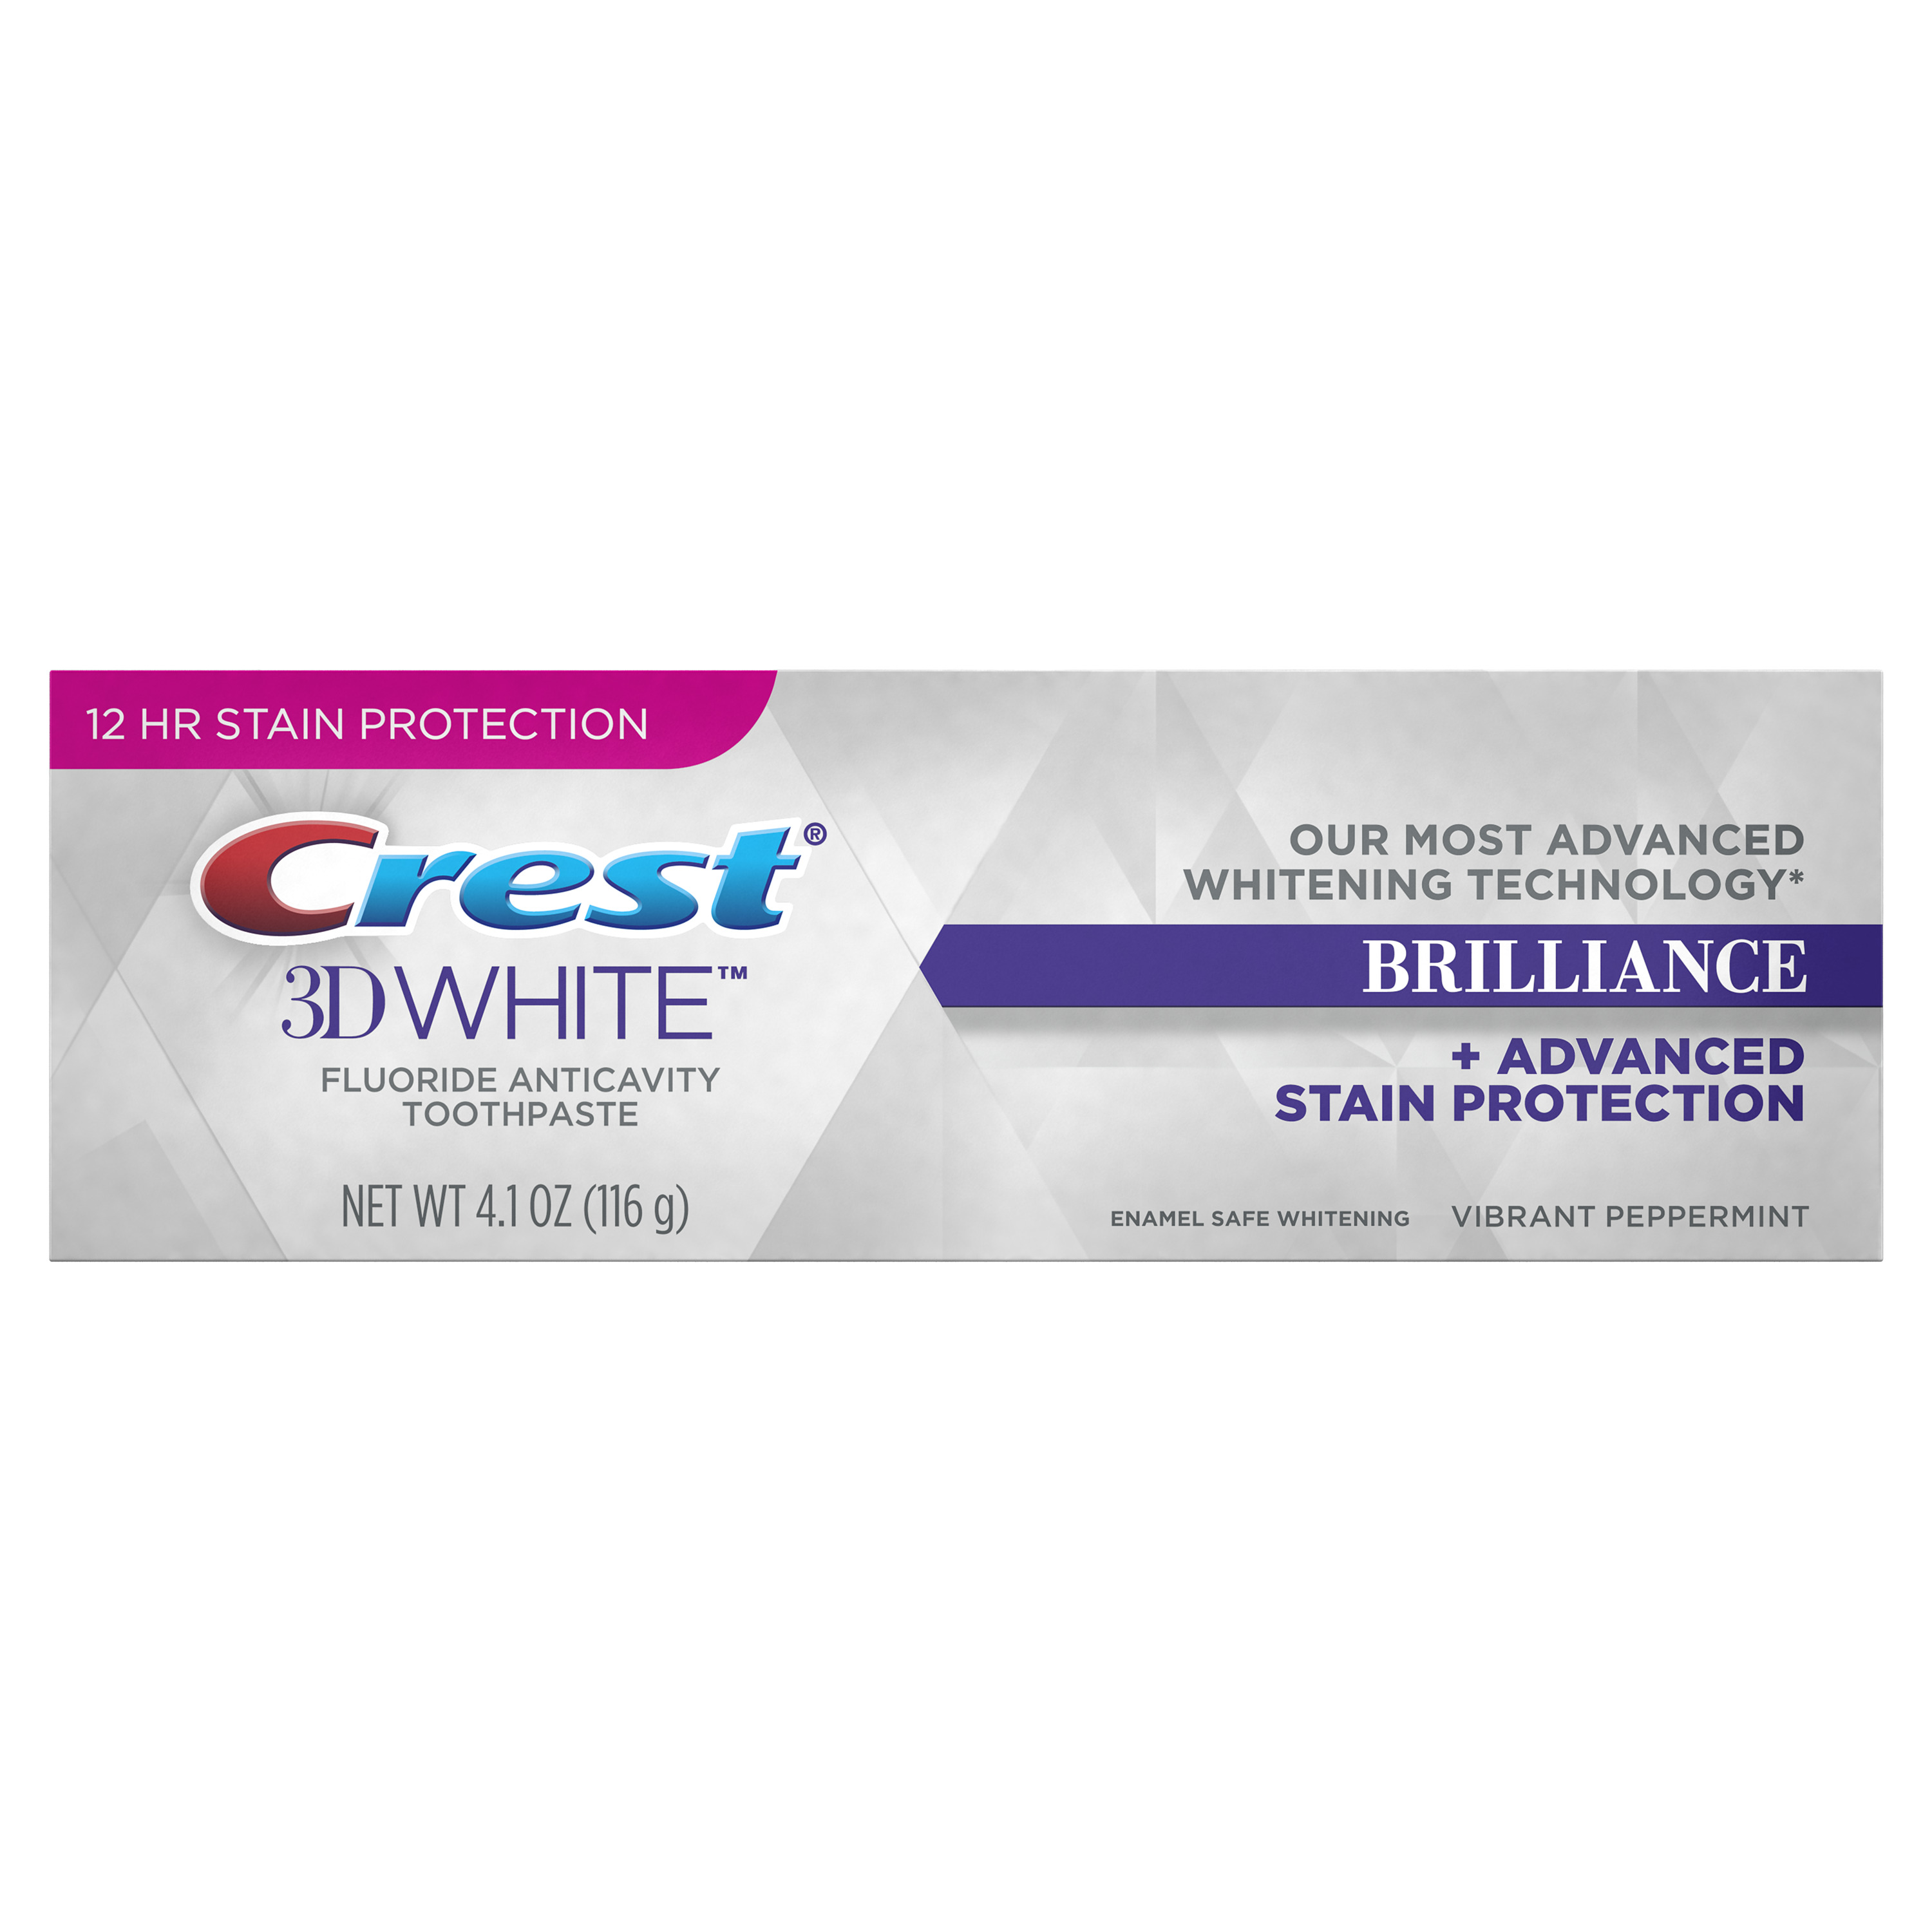 Crest 3D White Brilliance Advanced Whitening Technology